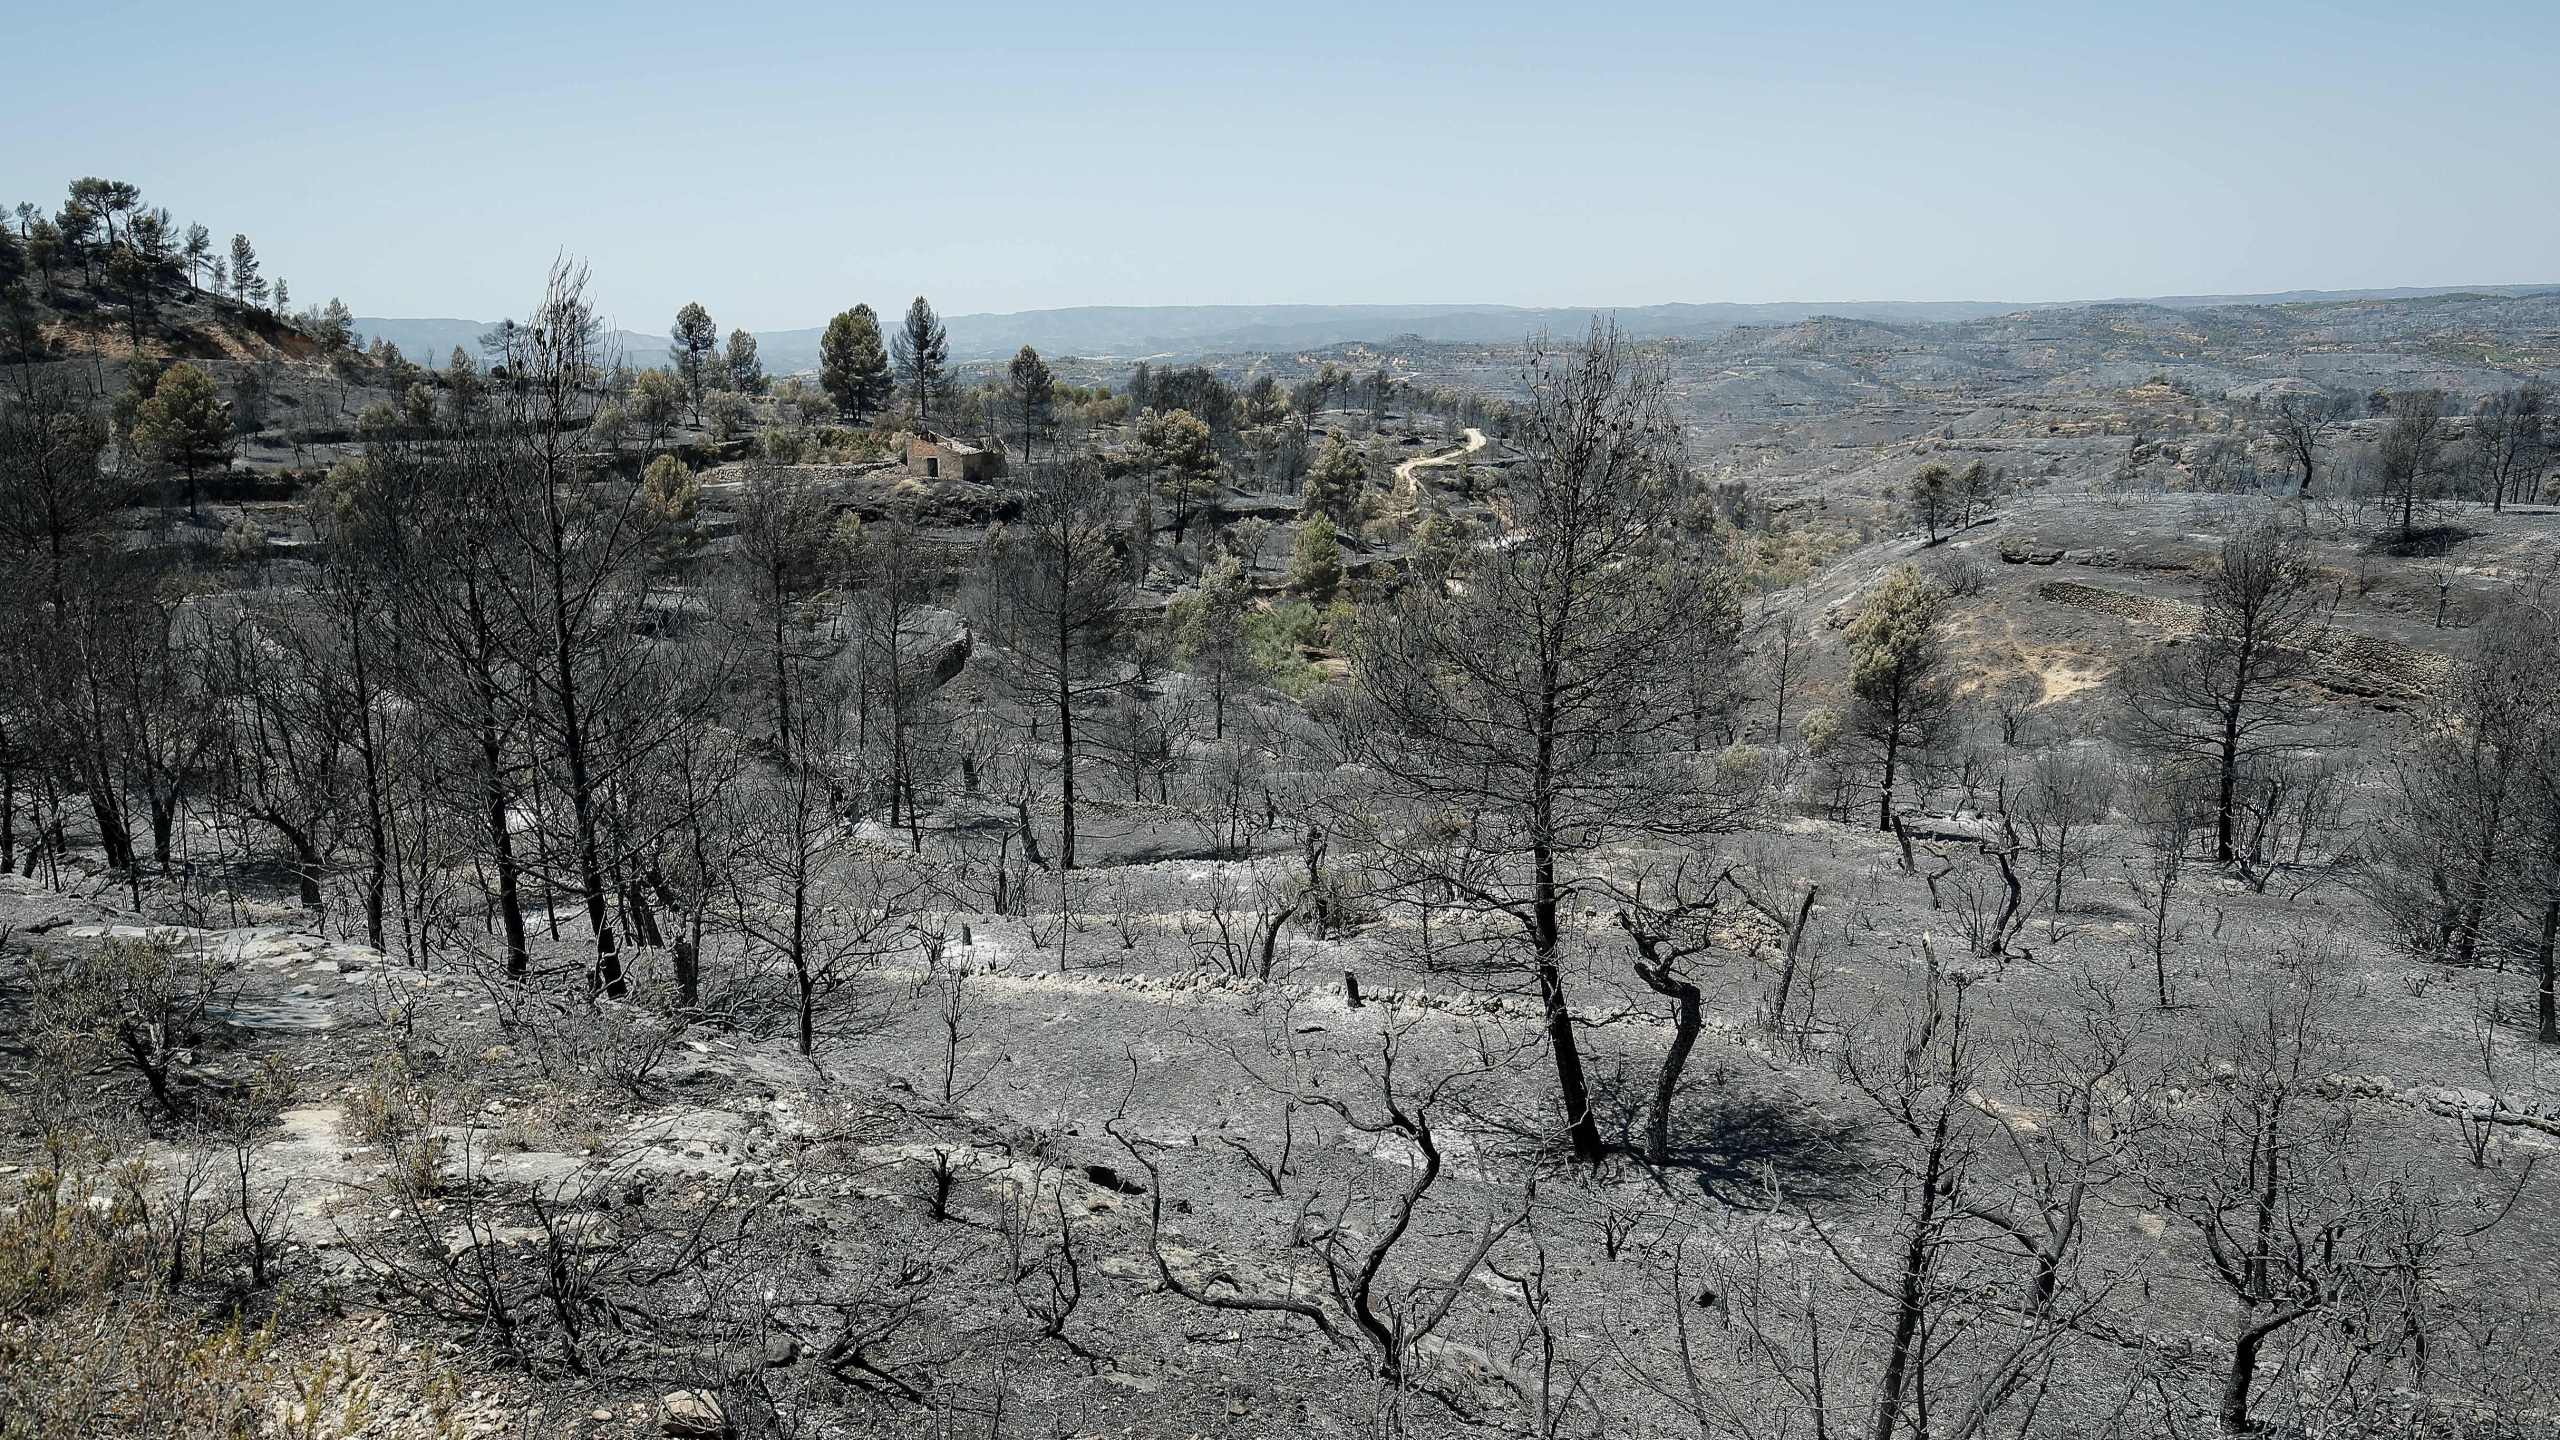 Burned trees are pictured near Flix on June 28, 2019 as a forest fire raged out of control in the northeastern region of Catalonia (Credit: PAU BARRENA/AFP/Getty Images)